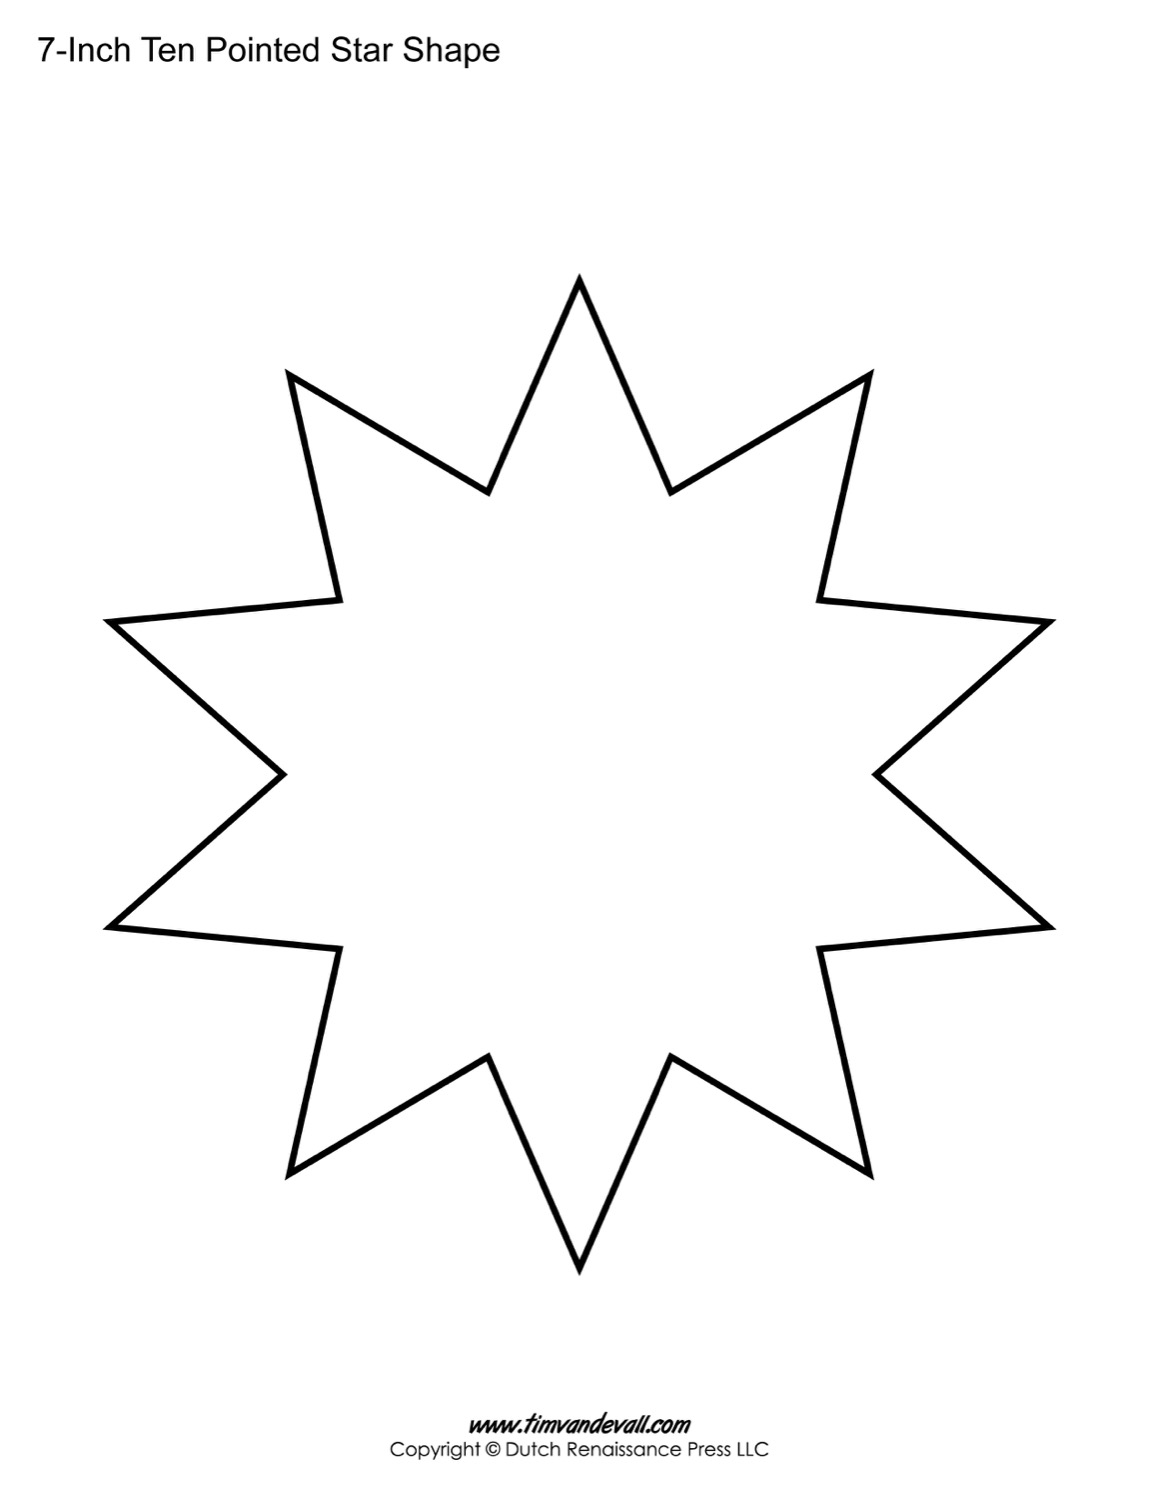 Star Shape Drawing At Getdrawings